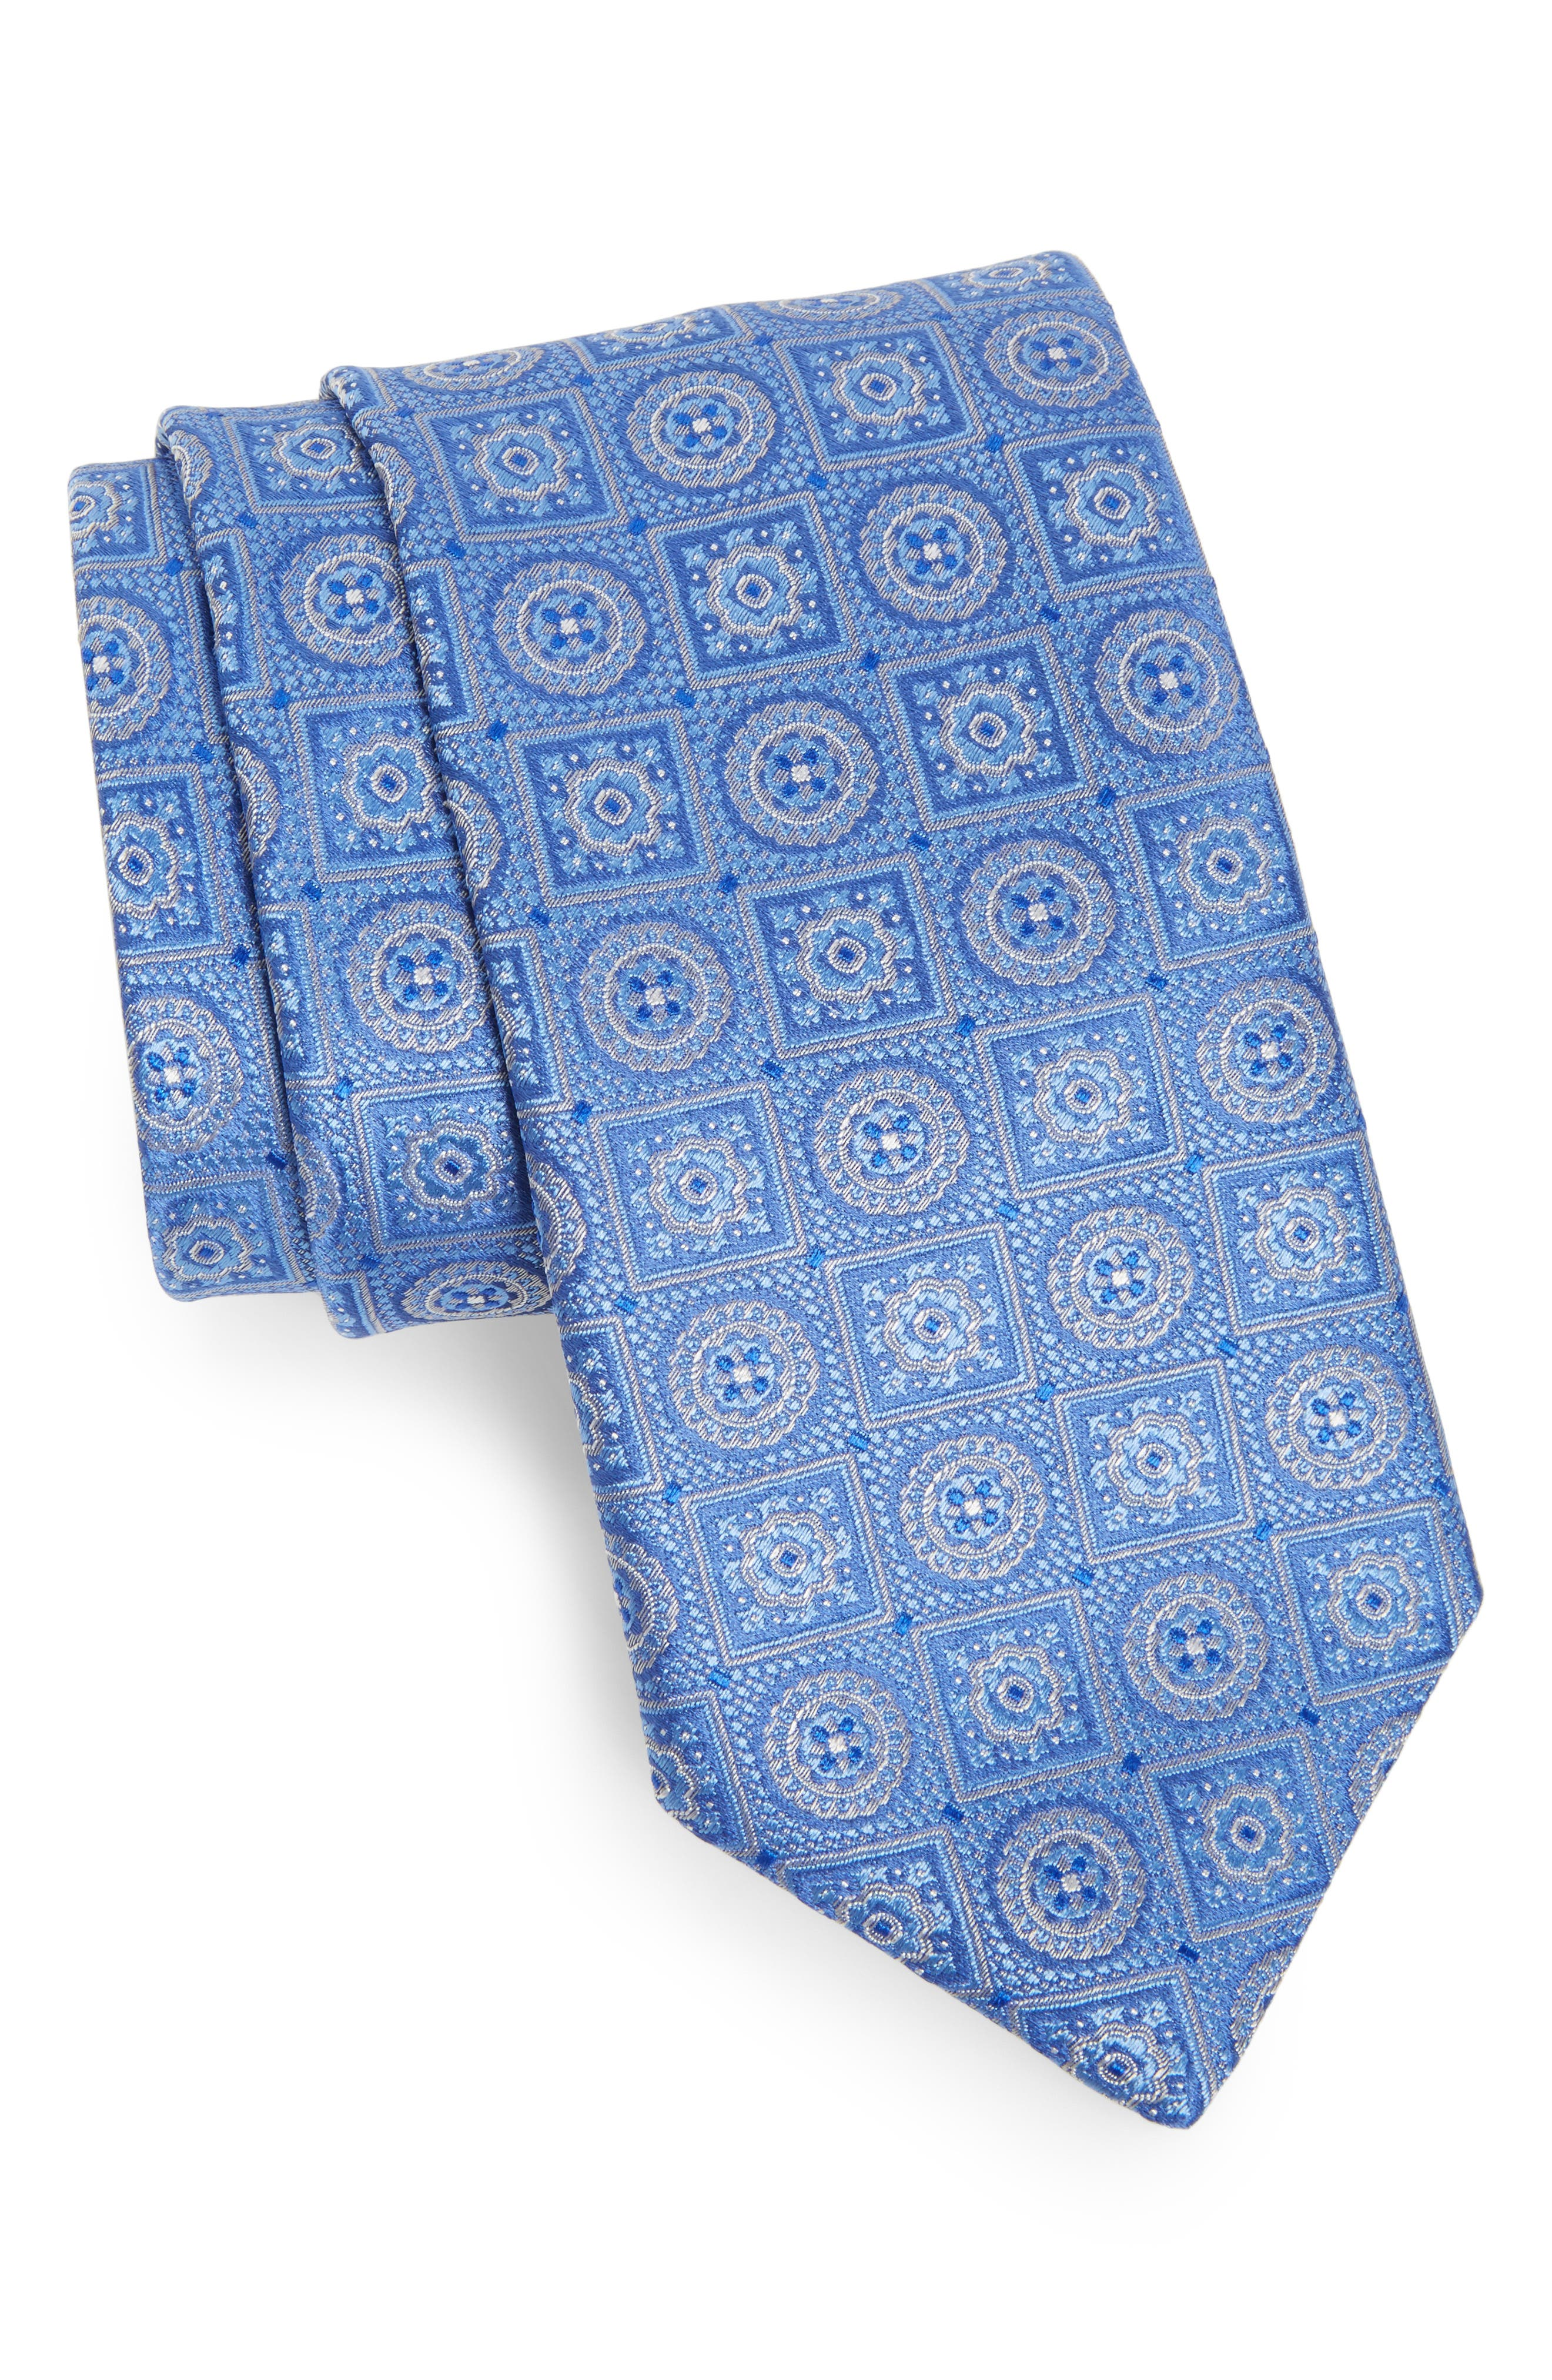 Medallion Silk Tie,                             Main thumbnail 1, color,                             Medium Blue